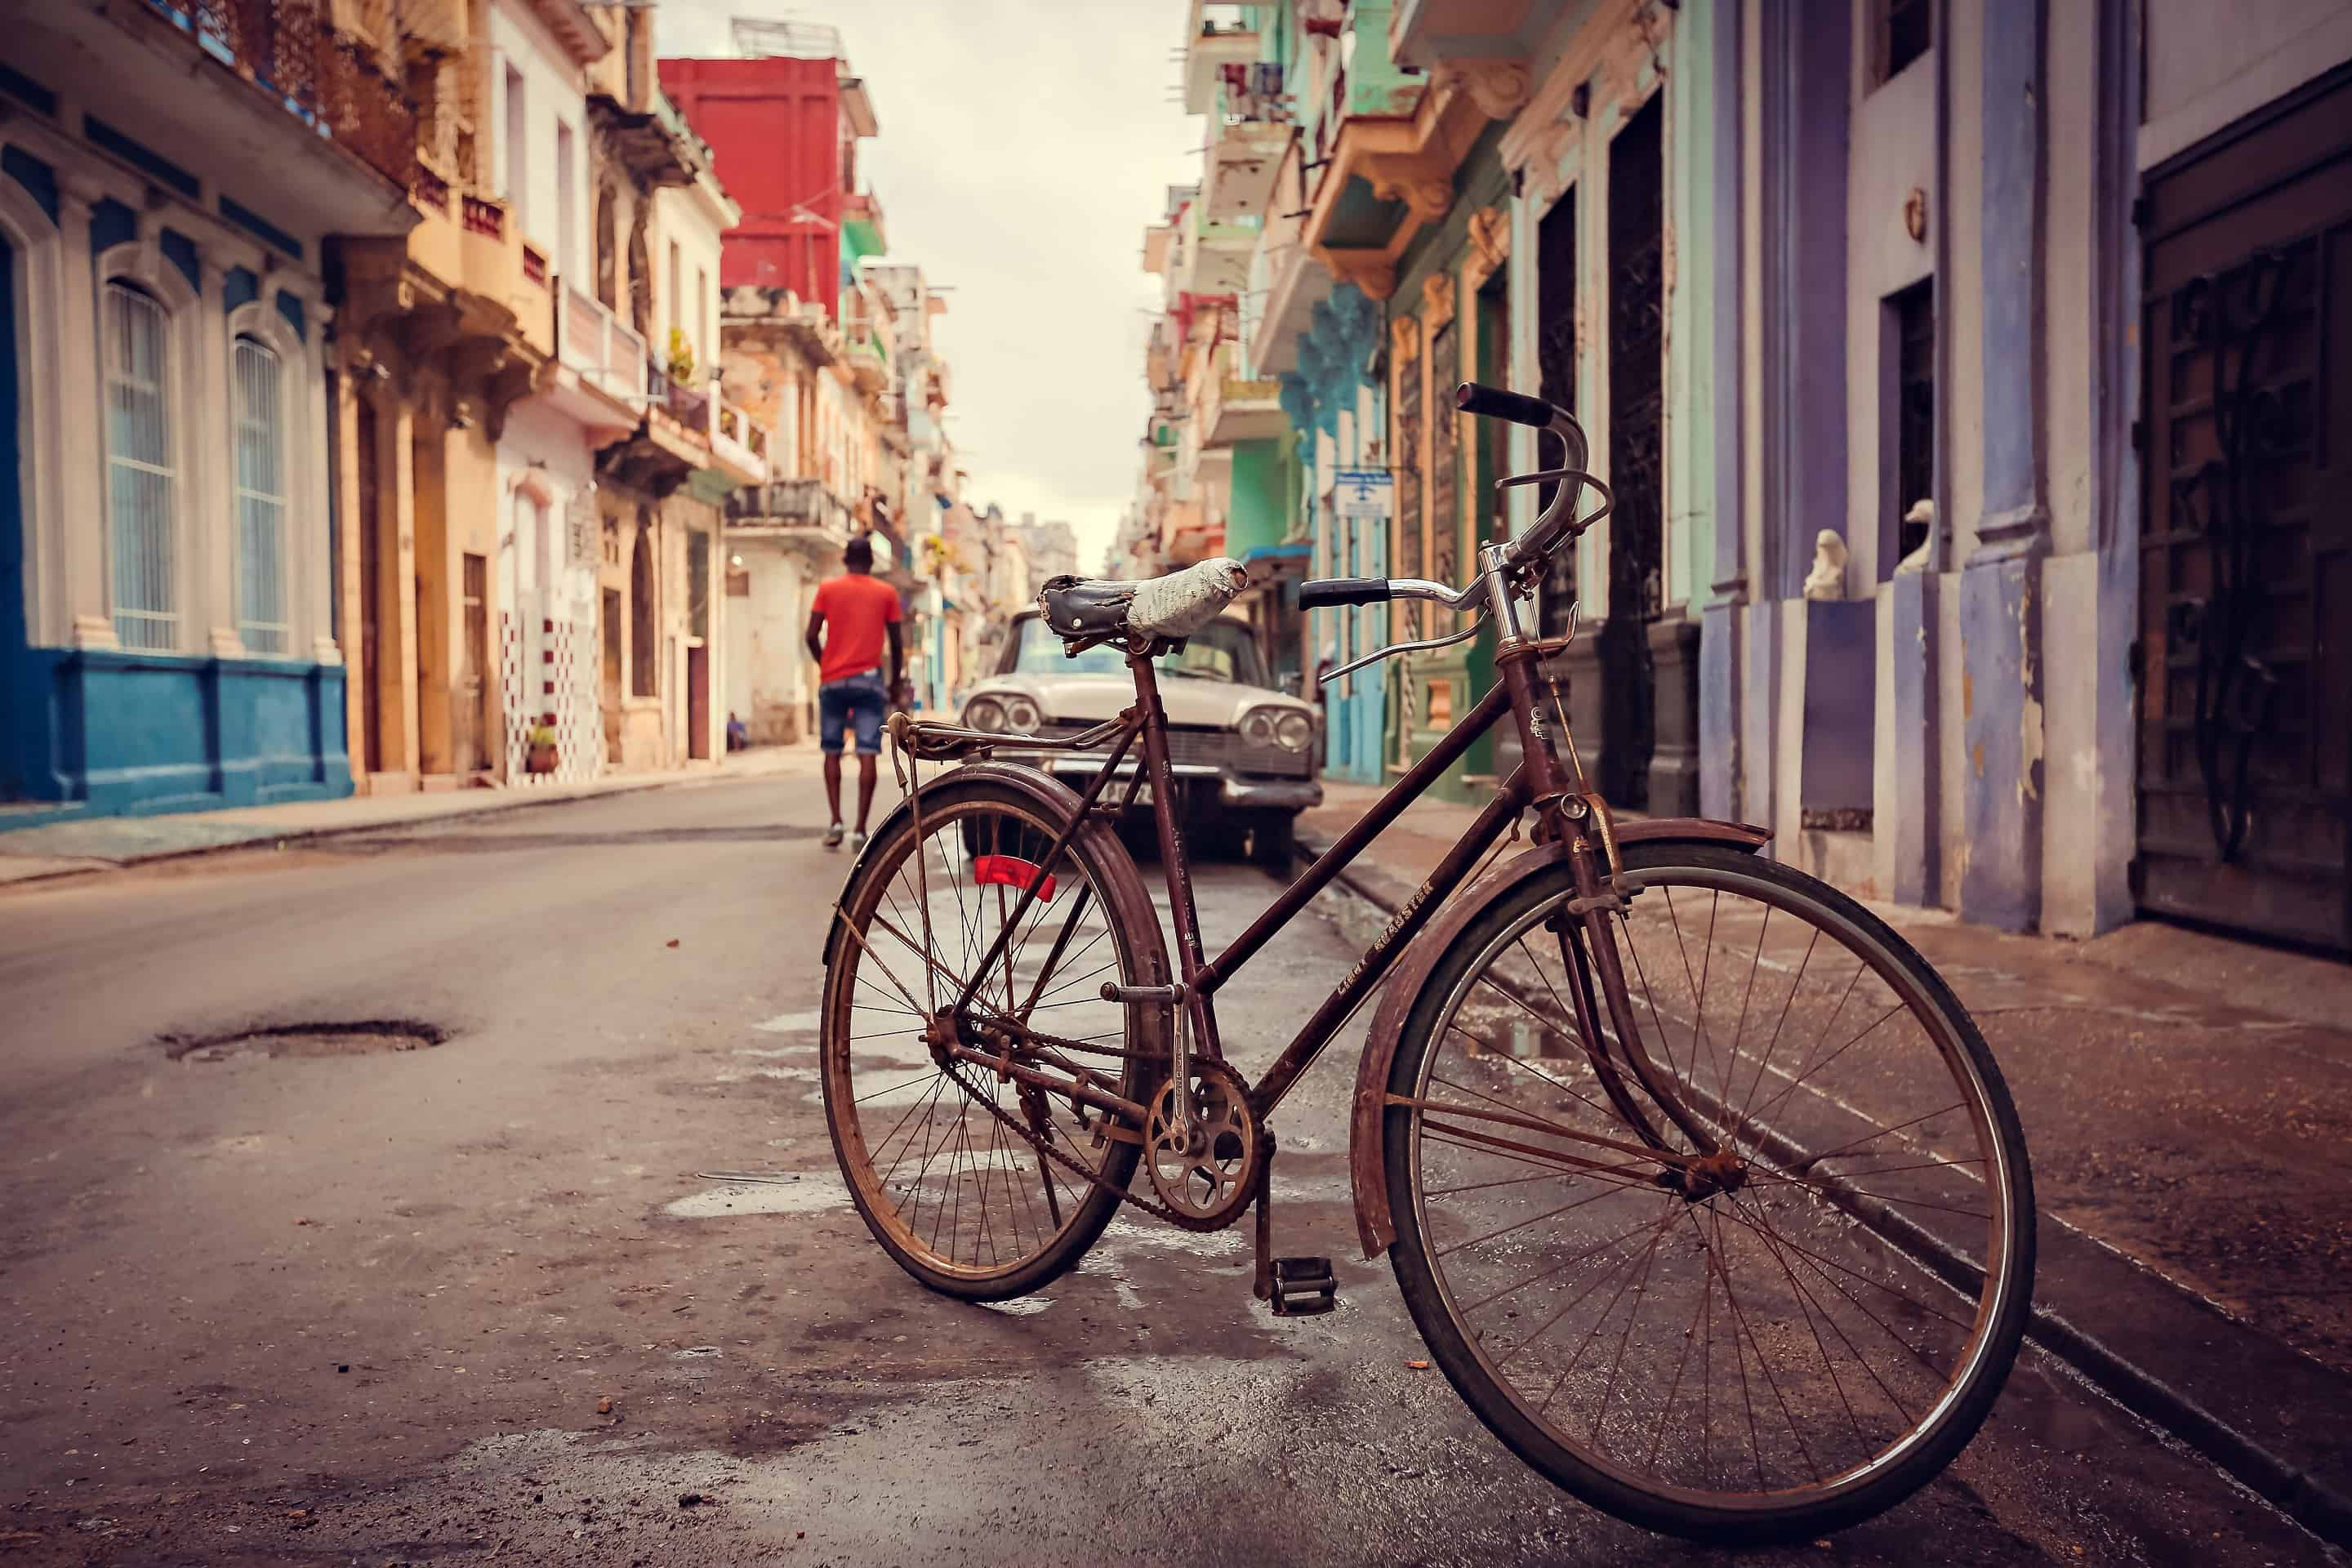 10 havana experiences you need to have before the us tourism boom ...